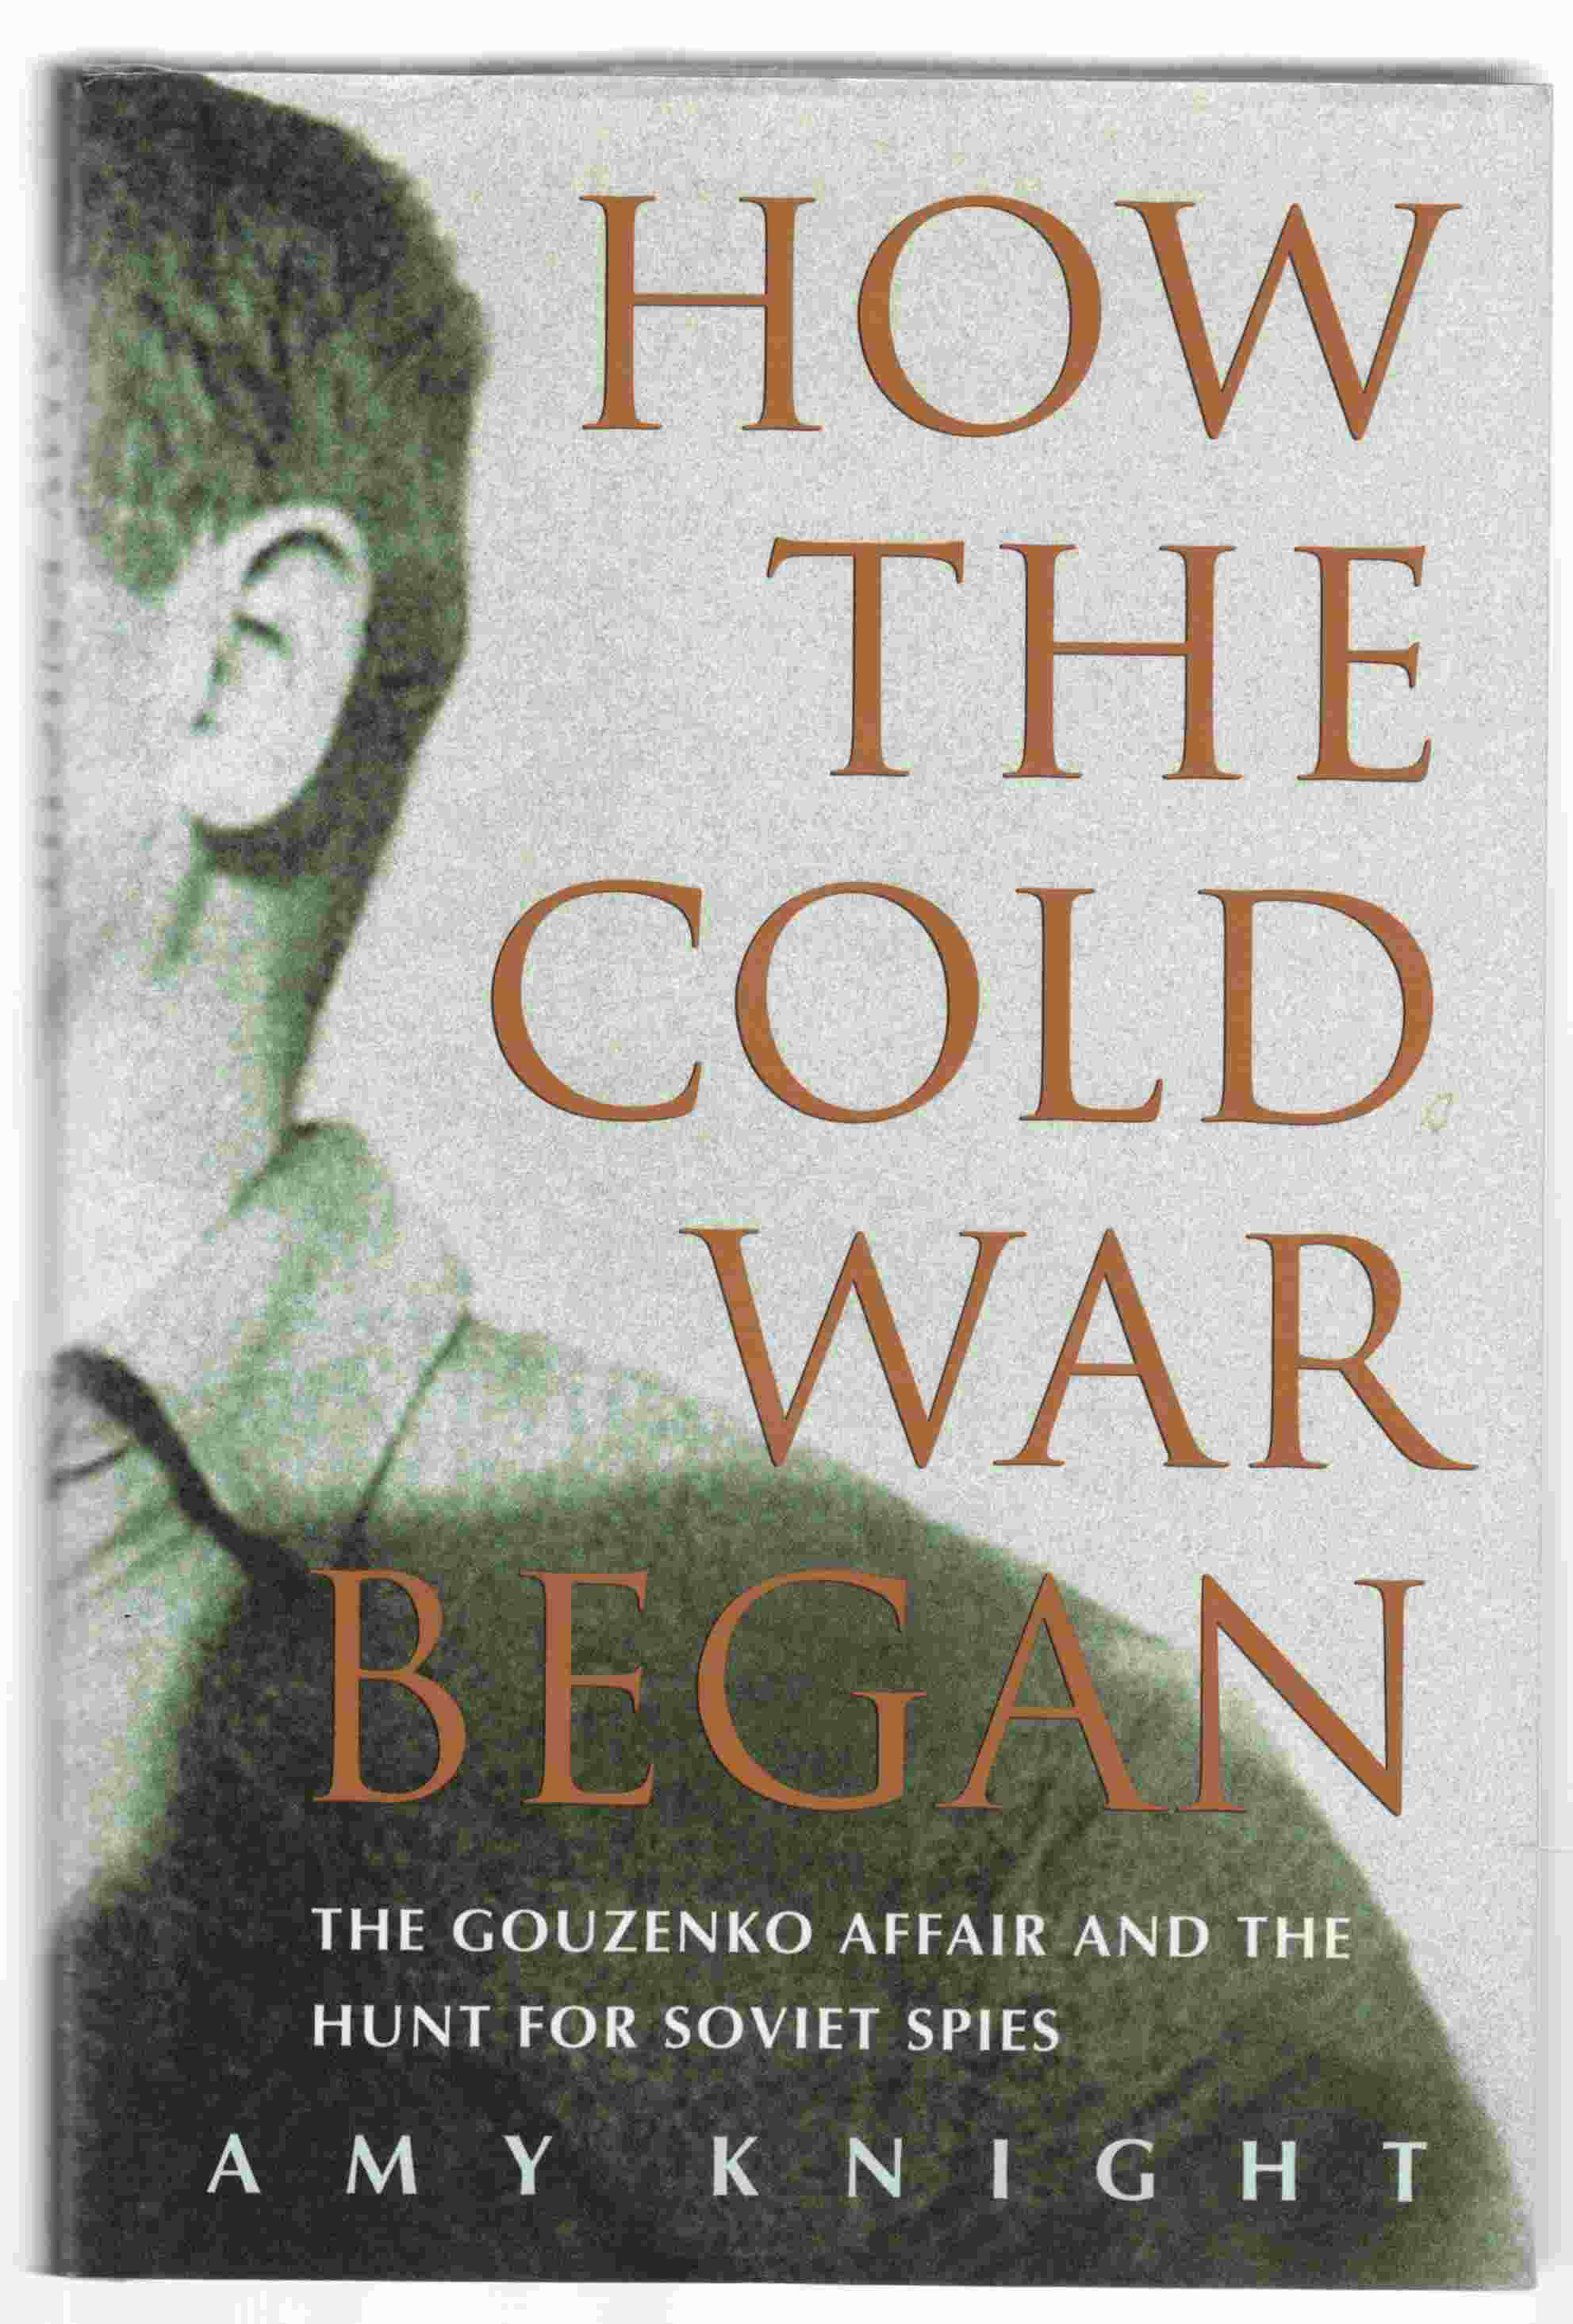 Image for How the Cold War Began The Gouzenko Affair and the Hunt for Soviet Spies